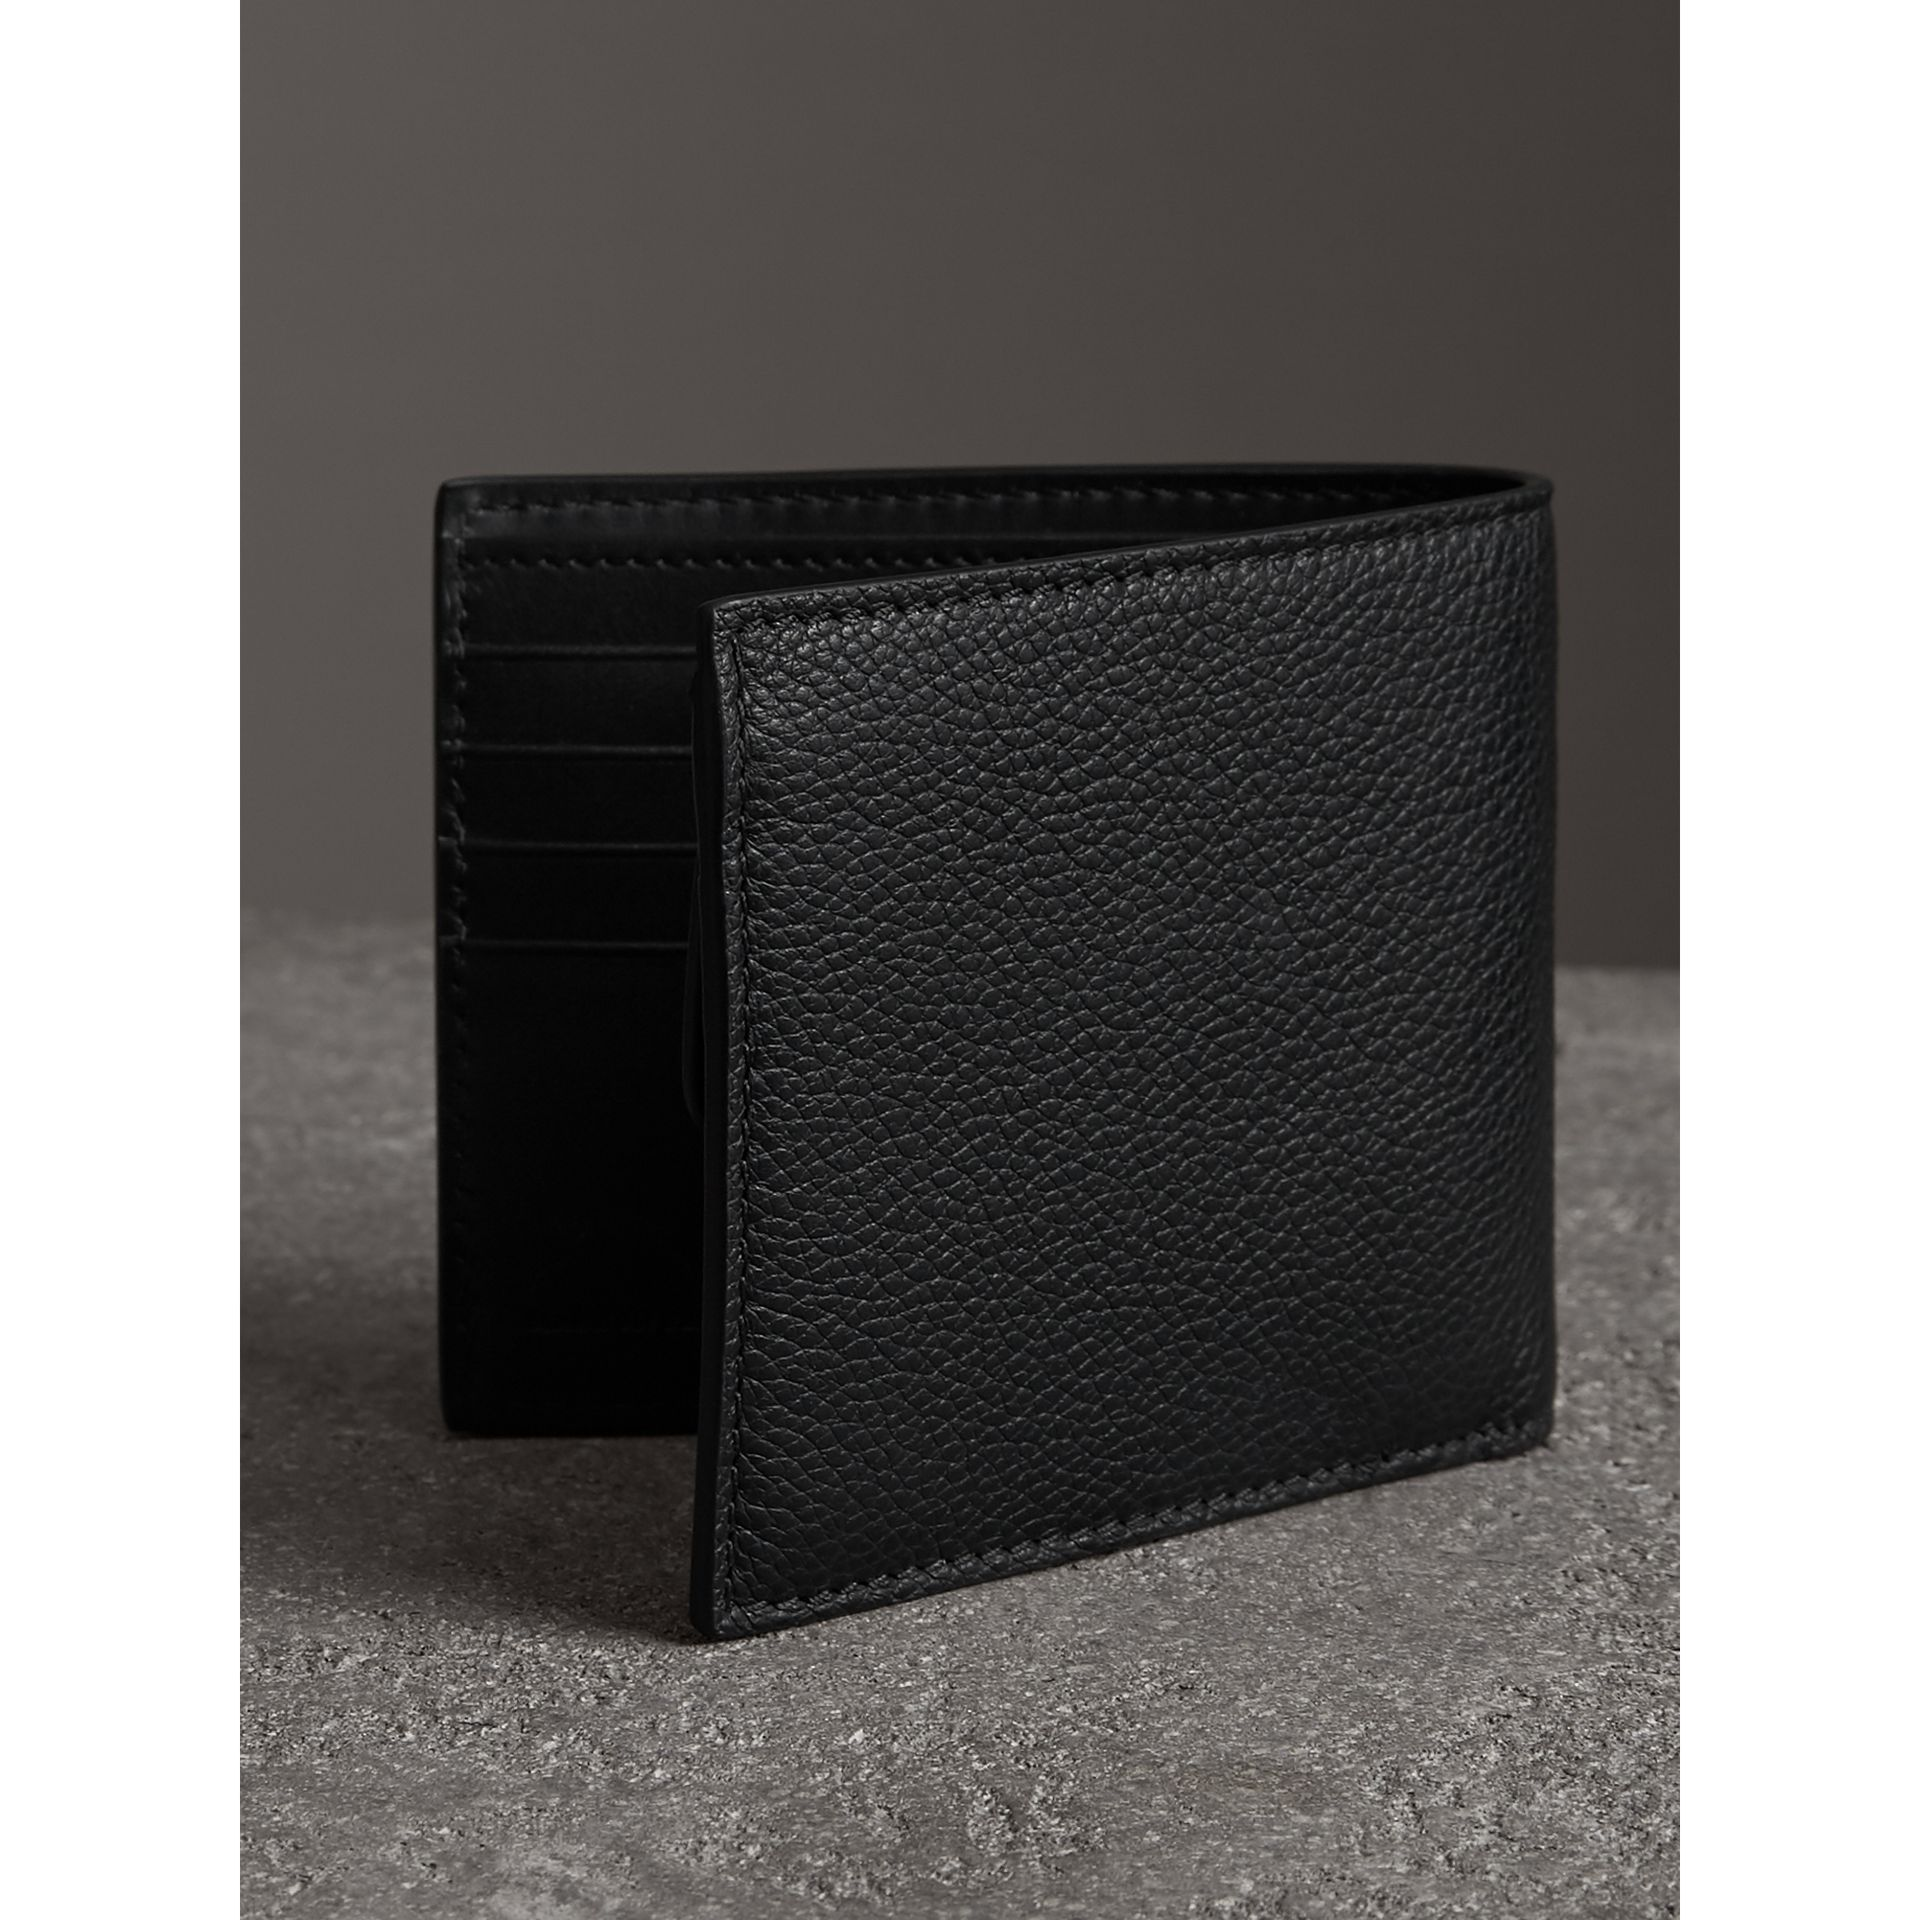 Burberry Black Grainy Leather International Bifold Coin Wallet